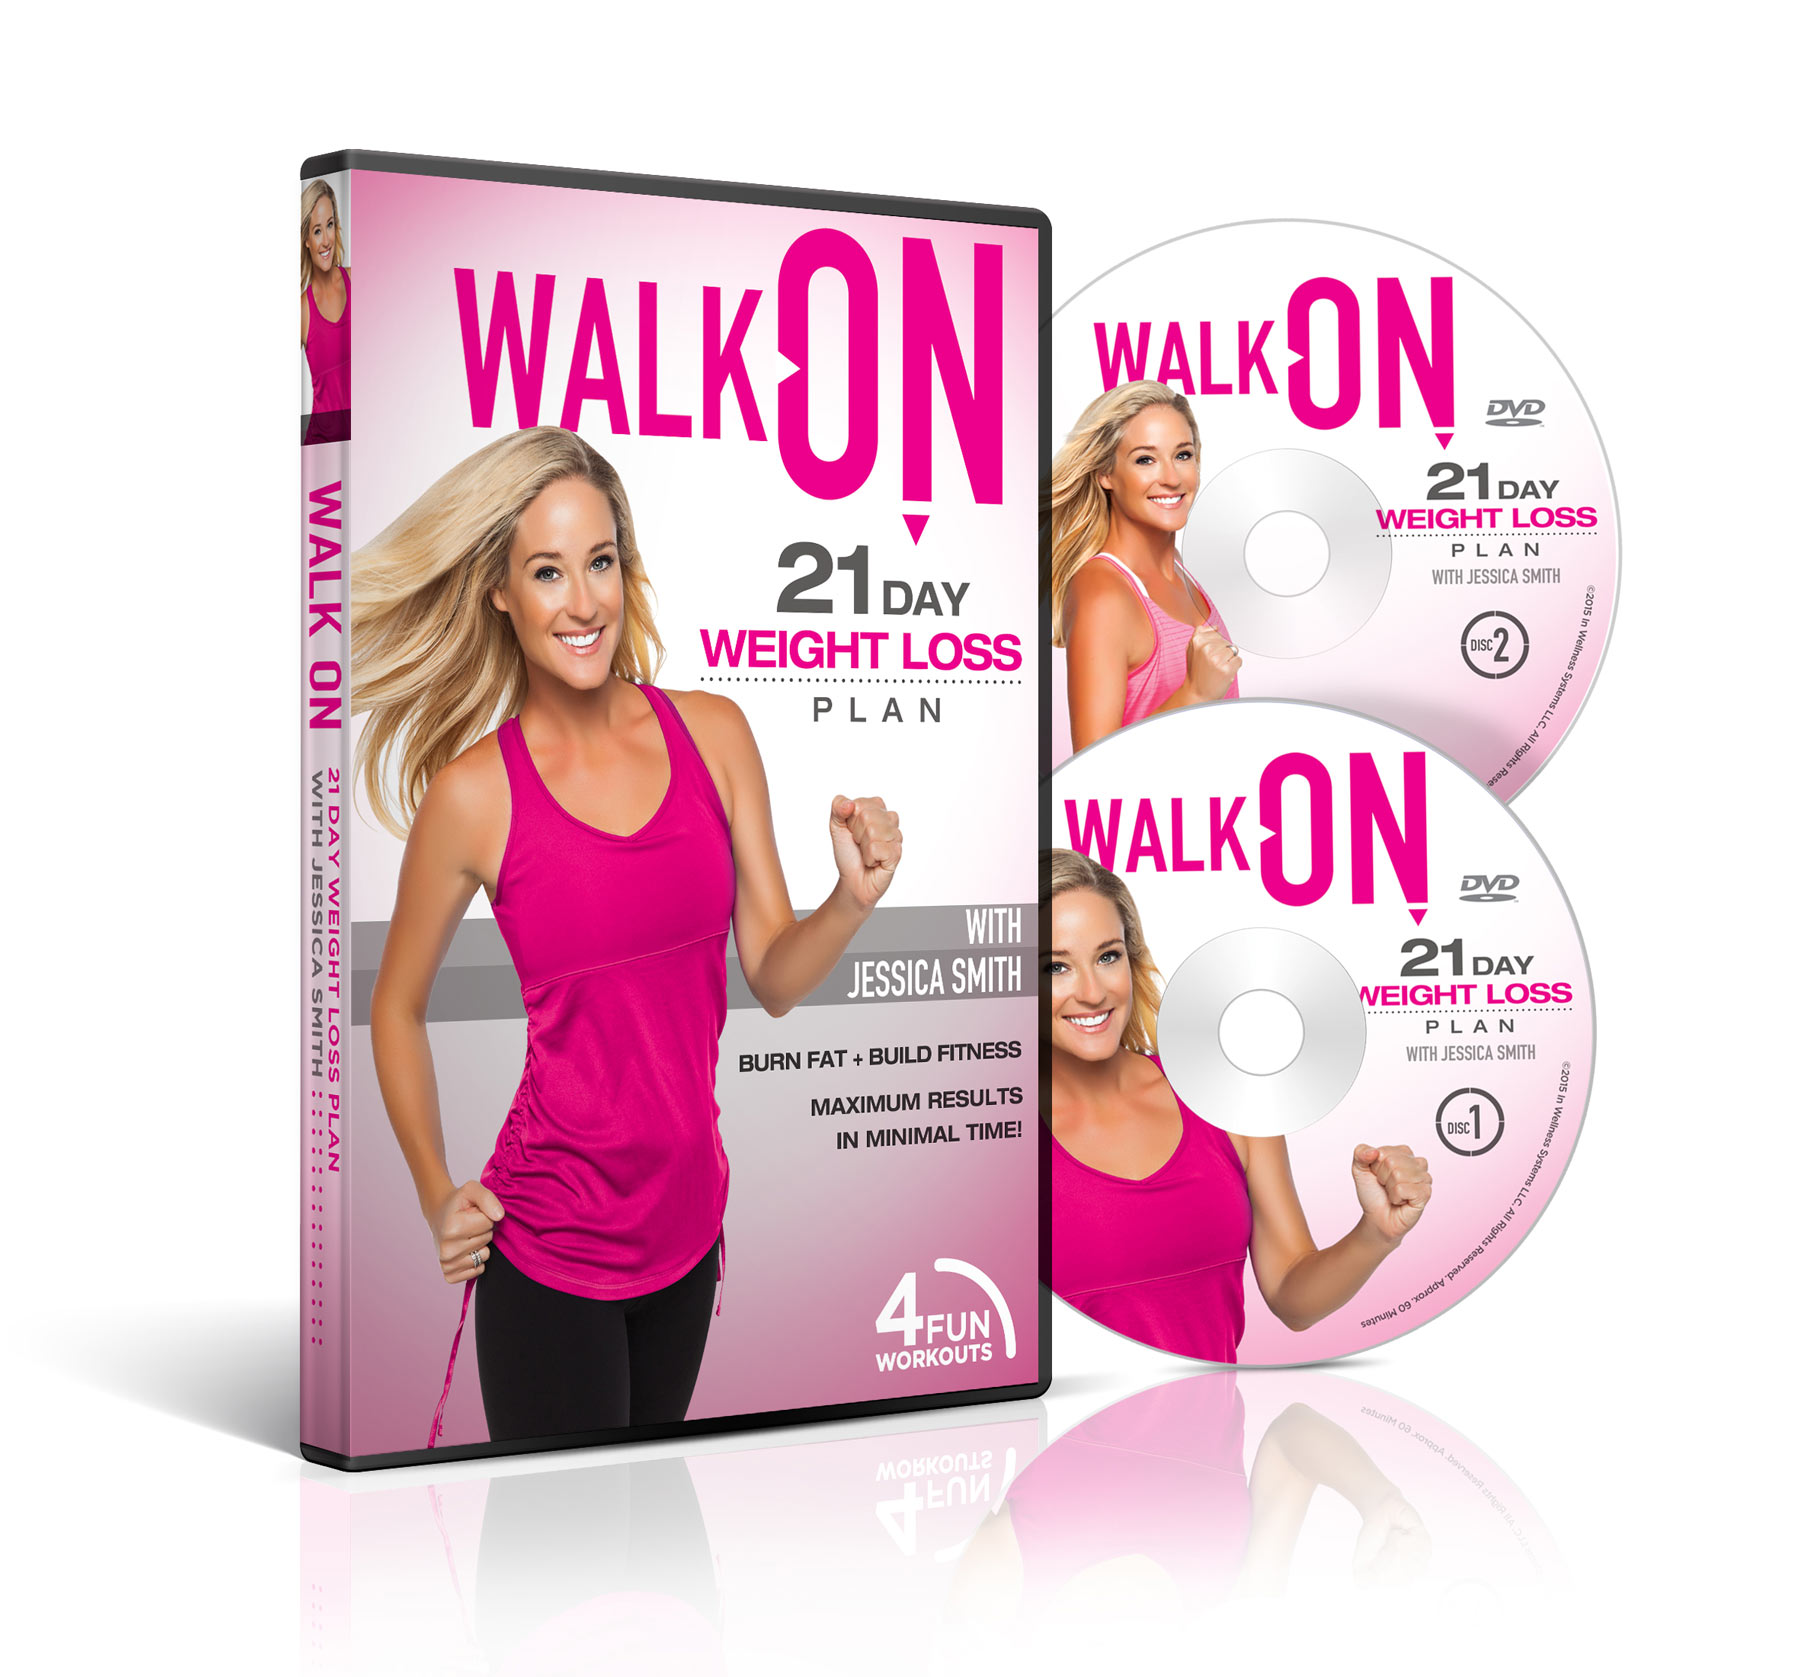 Walk On: 21 Day Weight Loss Plan